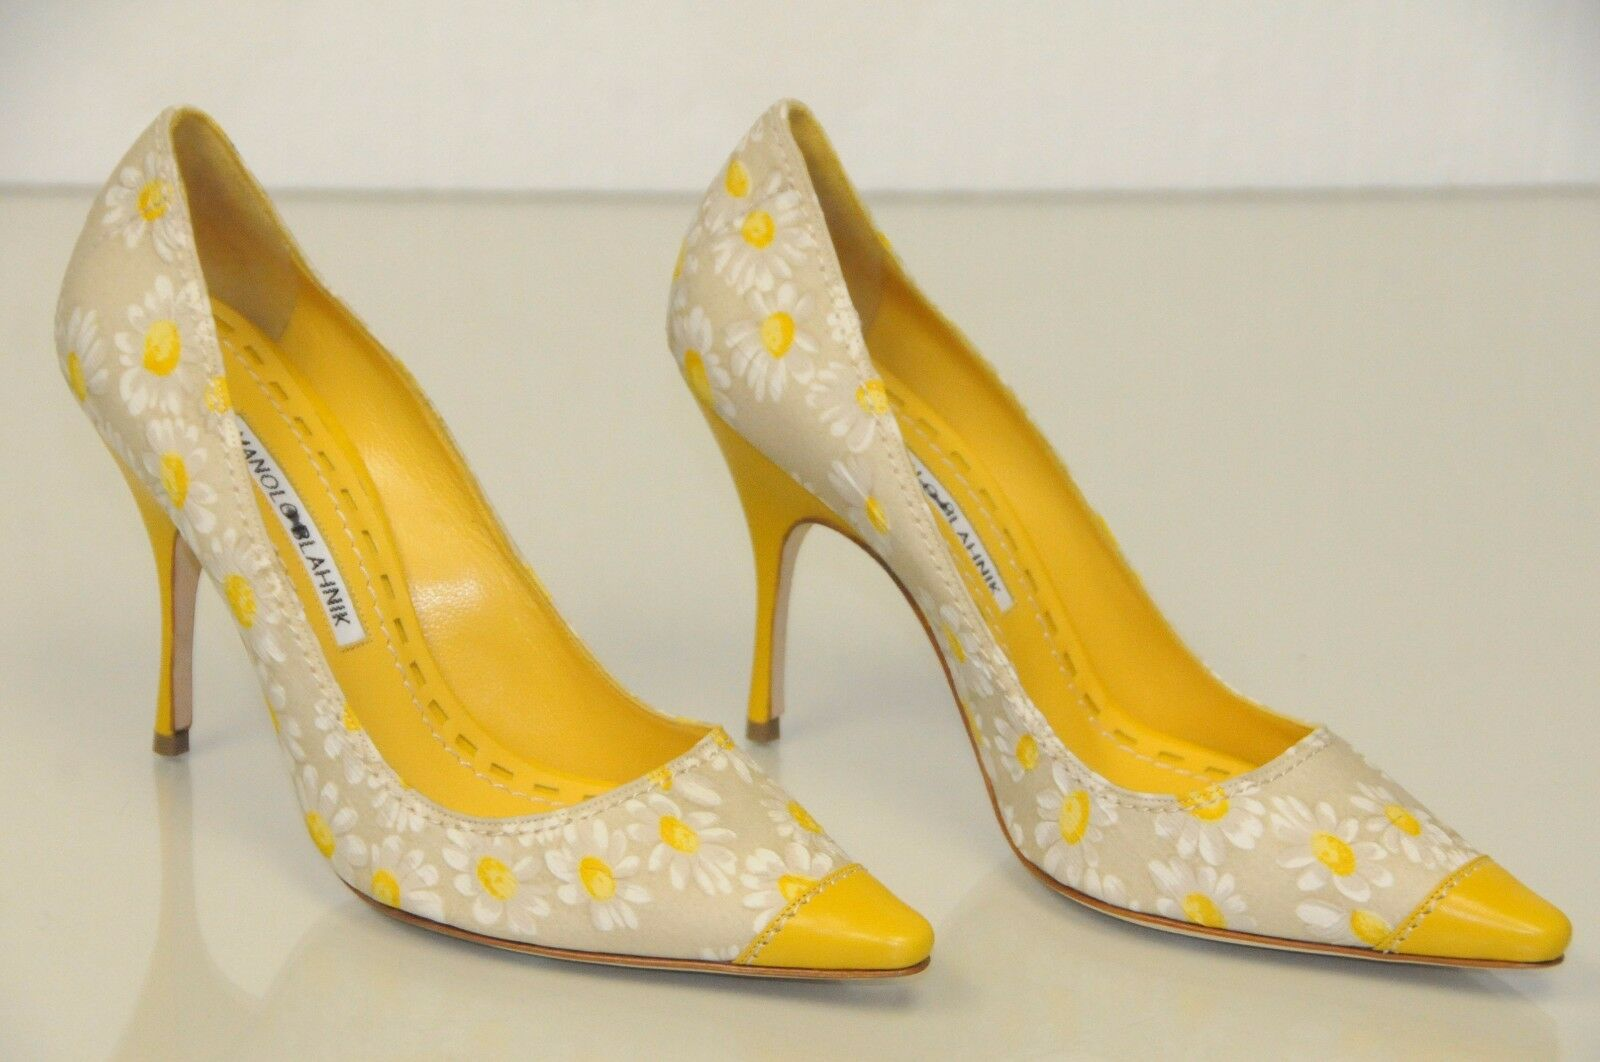 NEW MANOLO BLAHNIK YELLOW LEATHER FLORAL temeneus 105 shoes BB Heel Pumps